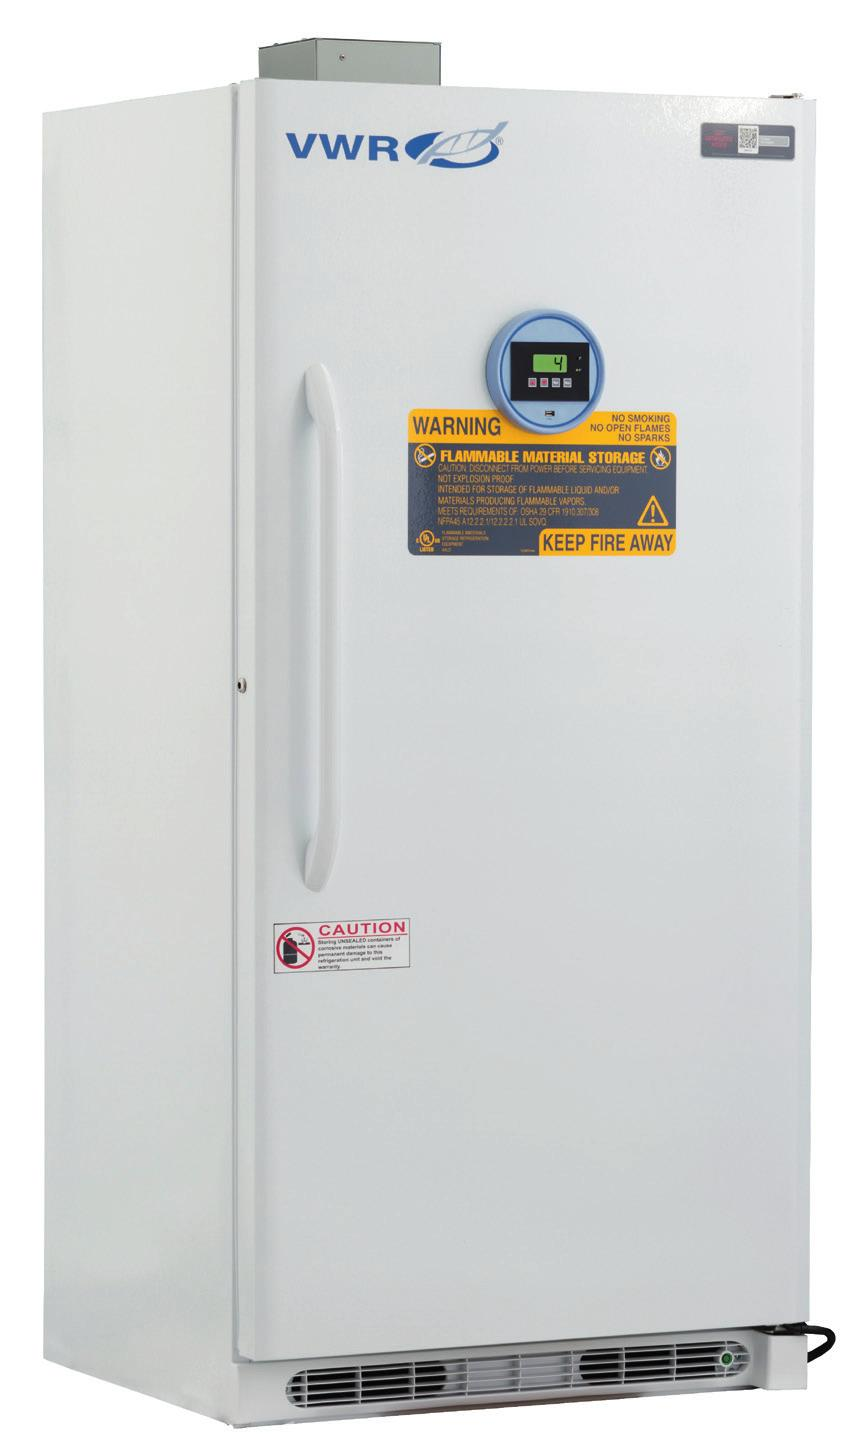 VWR SERIES FLAMMABLE REFRIGERATORS & FREEZERS 1 to 10 C [Refrigerator] -15 to -25 C [Freezer] No internal electrical components inside of unit Electrical compressor components sealed in vapor-proof